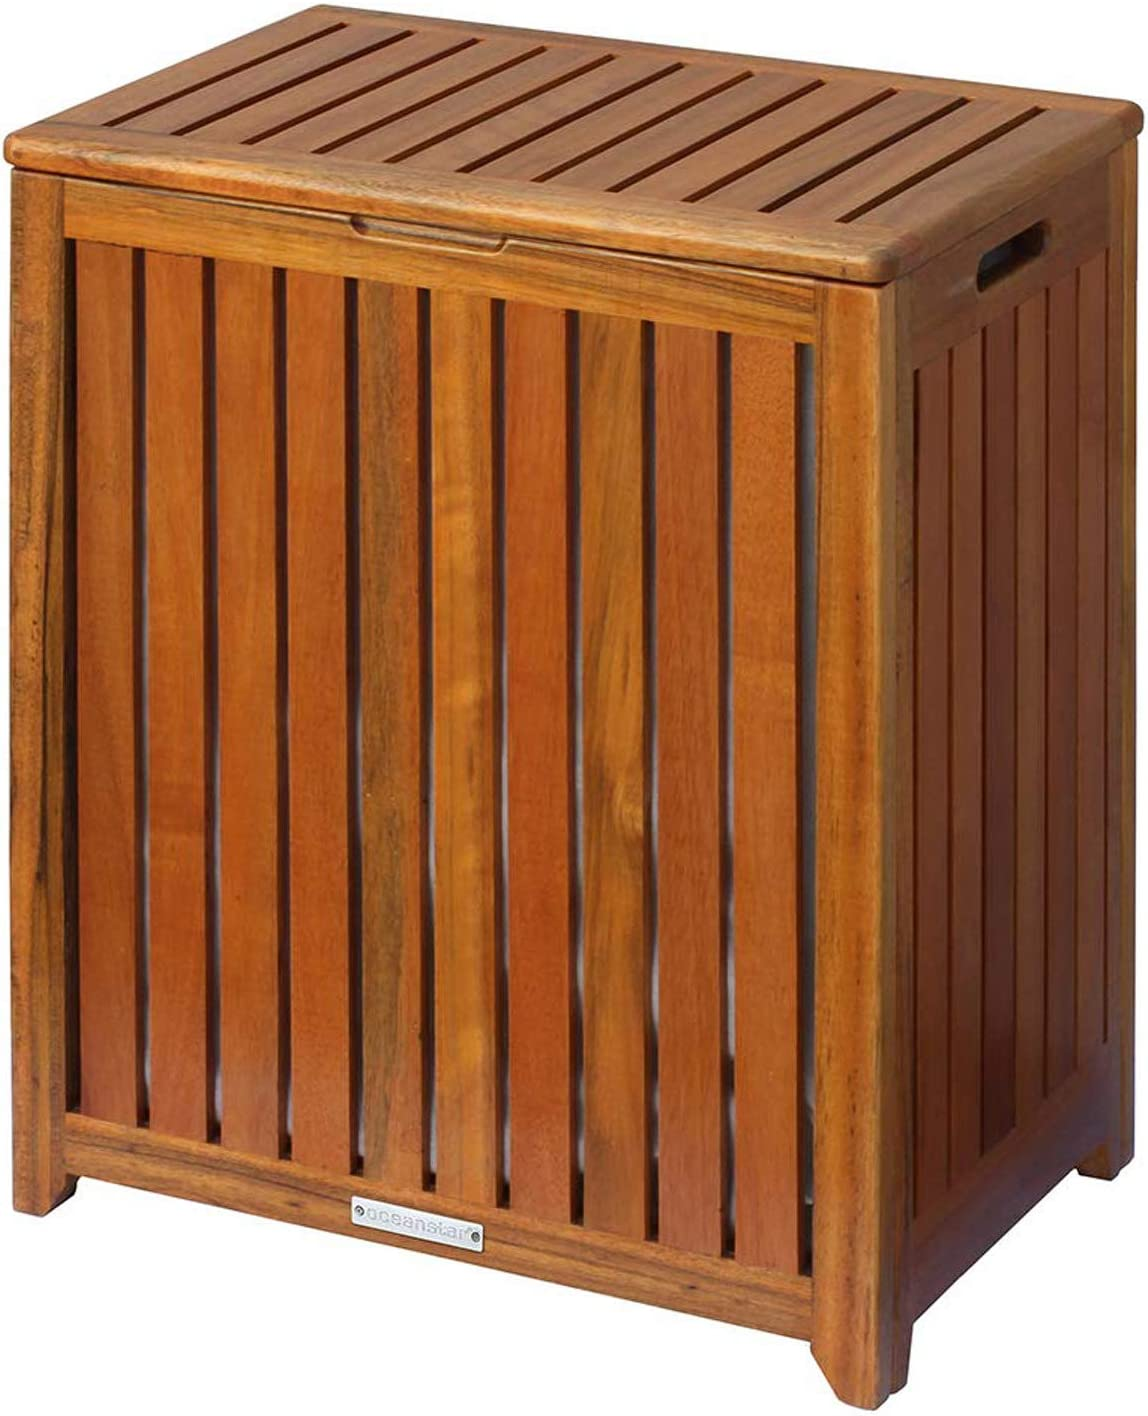 Amazon Com Laundry Hamper With Flip Lid Solid Wood Construction Contemporary Clothes Organizer Lined With A Canvas Bag Slatted Design Home Kitchen